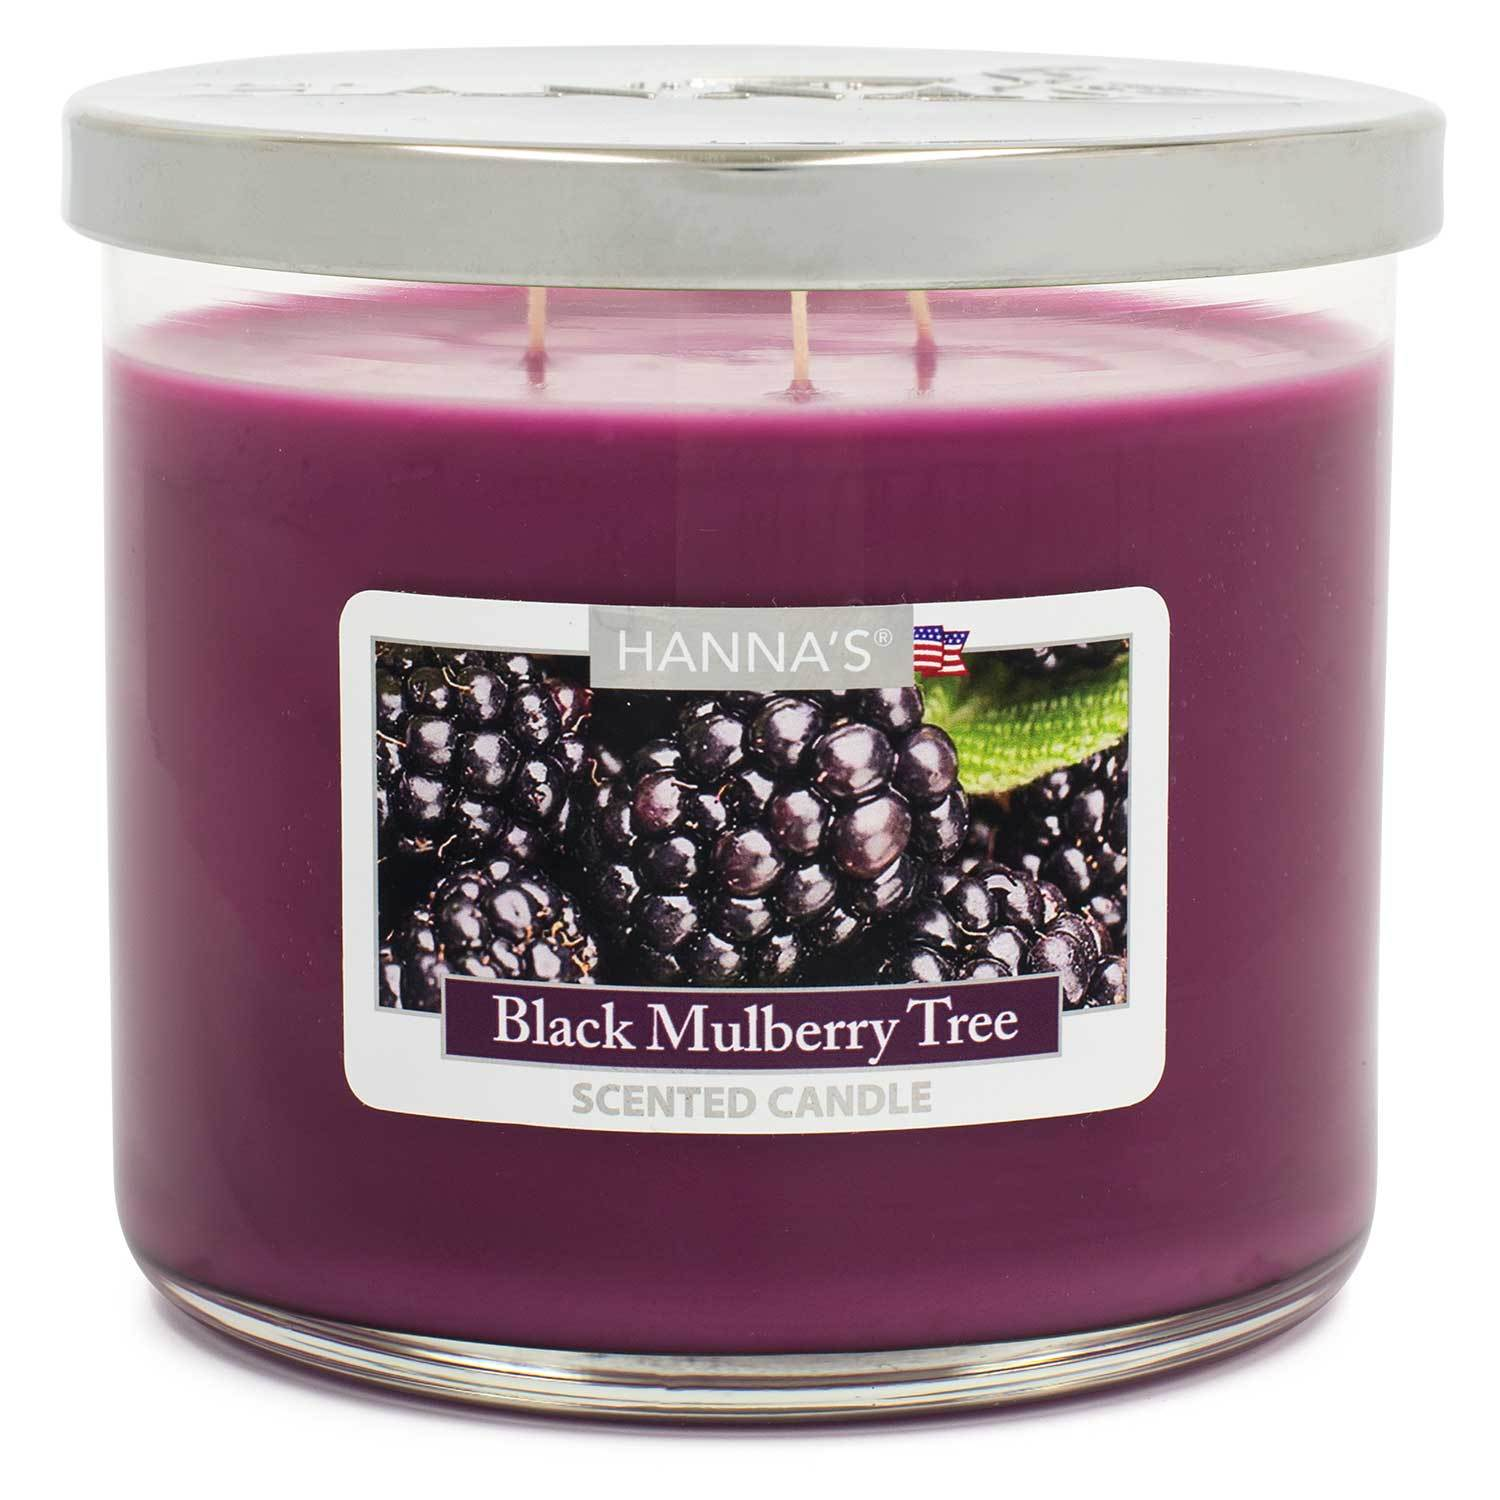 Black Mulberry Tree Scented Large 3 wick Candle - Candlemart.com